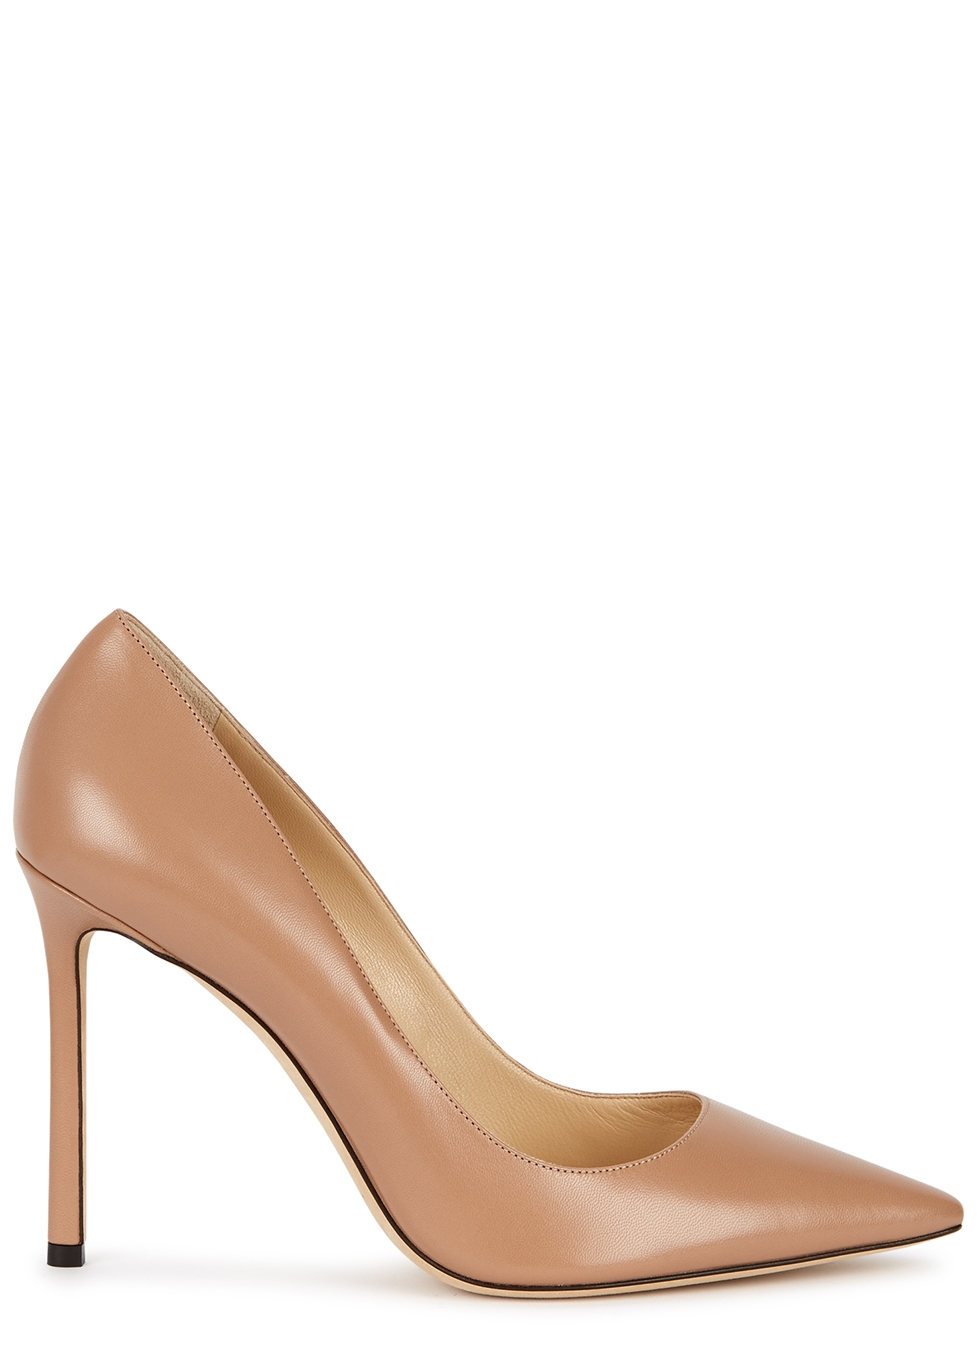 Romy 100 almond leather pumps